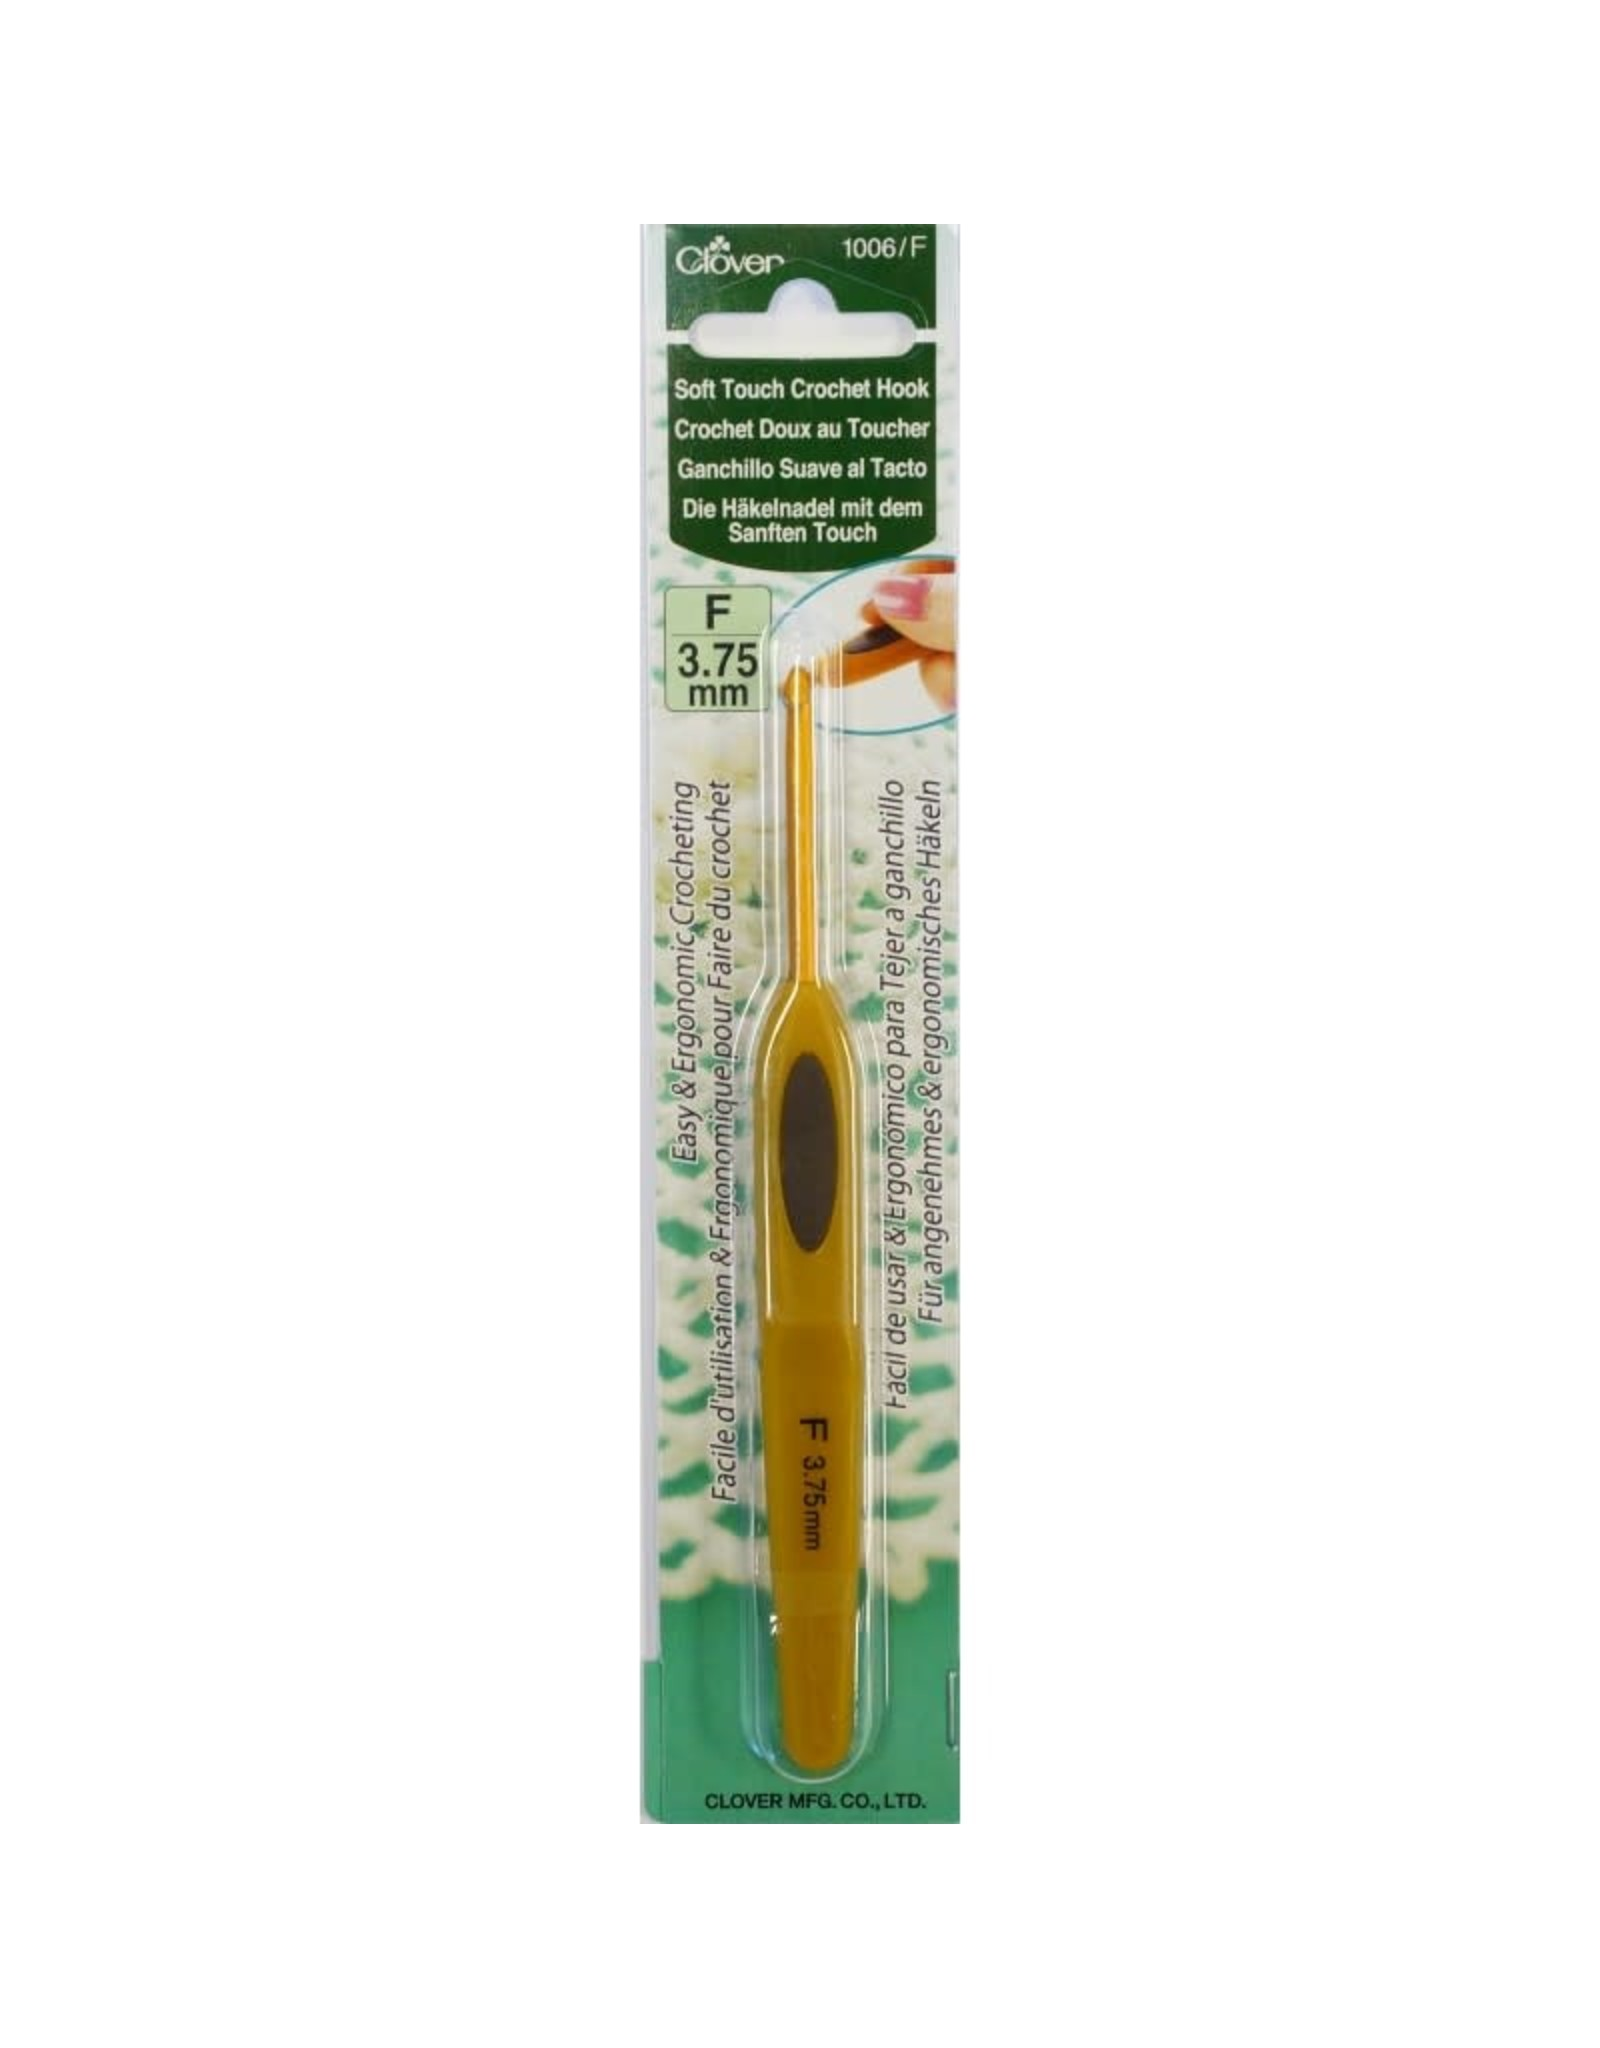 Clover Soft Touch crochet hook size F (3.75mm)